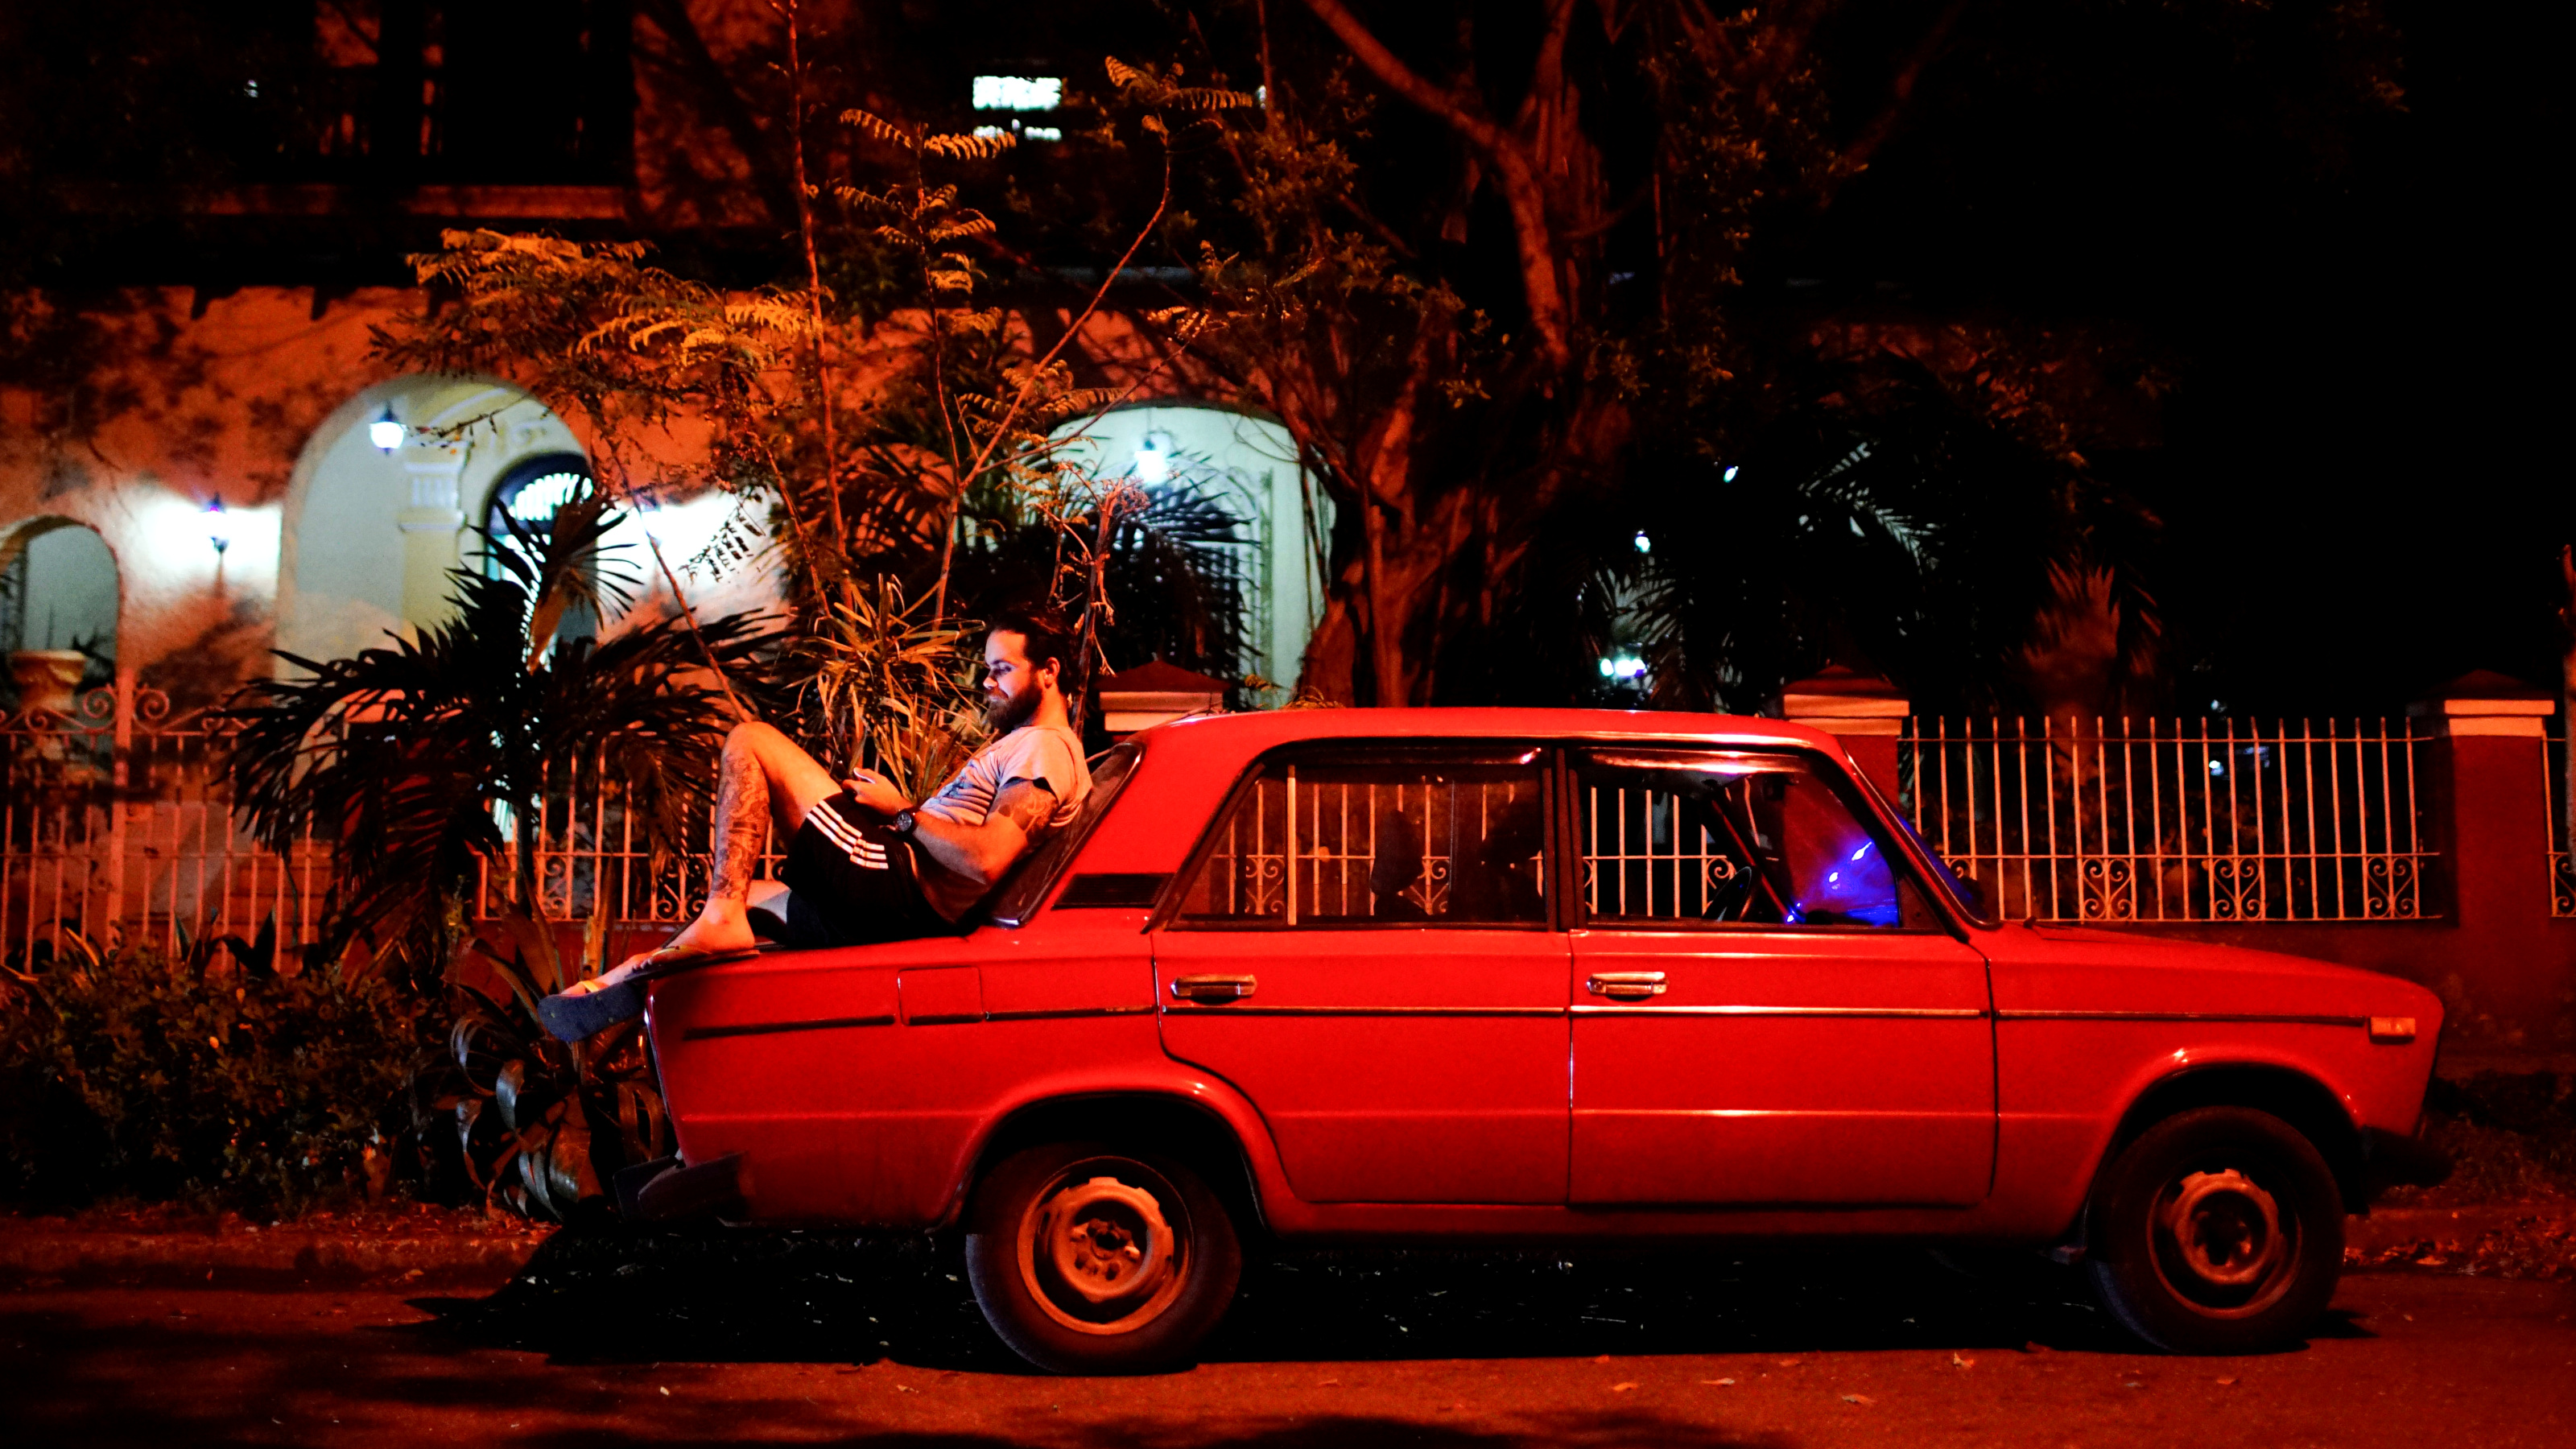 Tourist guide Daniel Hernandez, 26, sits on his Russian-made car as he speaks to his girlfriend who lives in Britain, at an internet hotspot in Havana, Cuba, September 24, 2017.